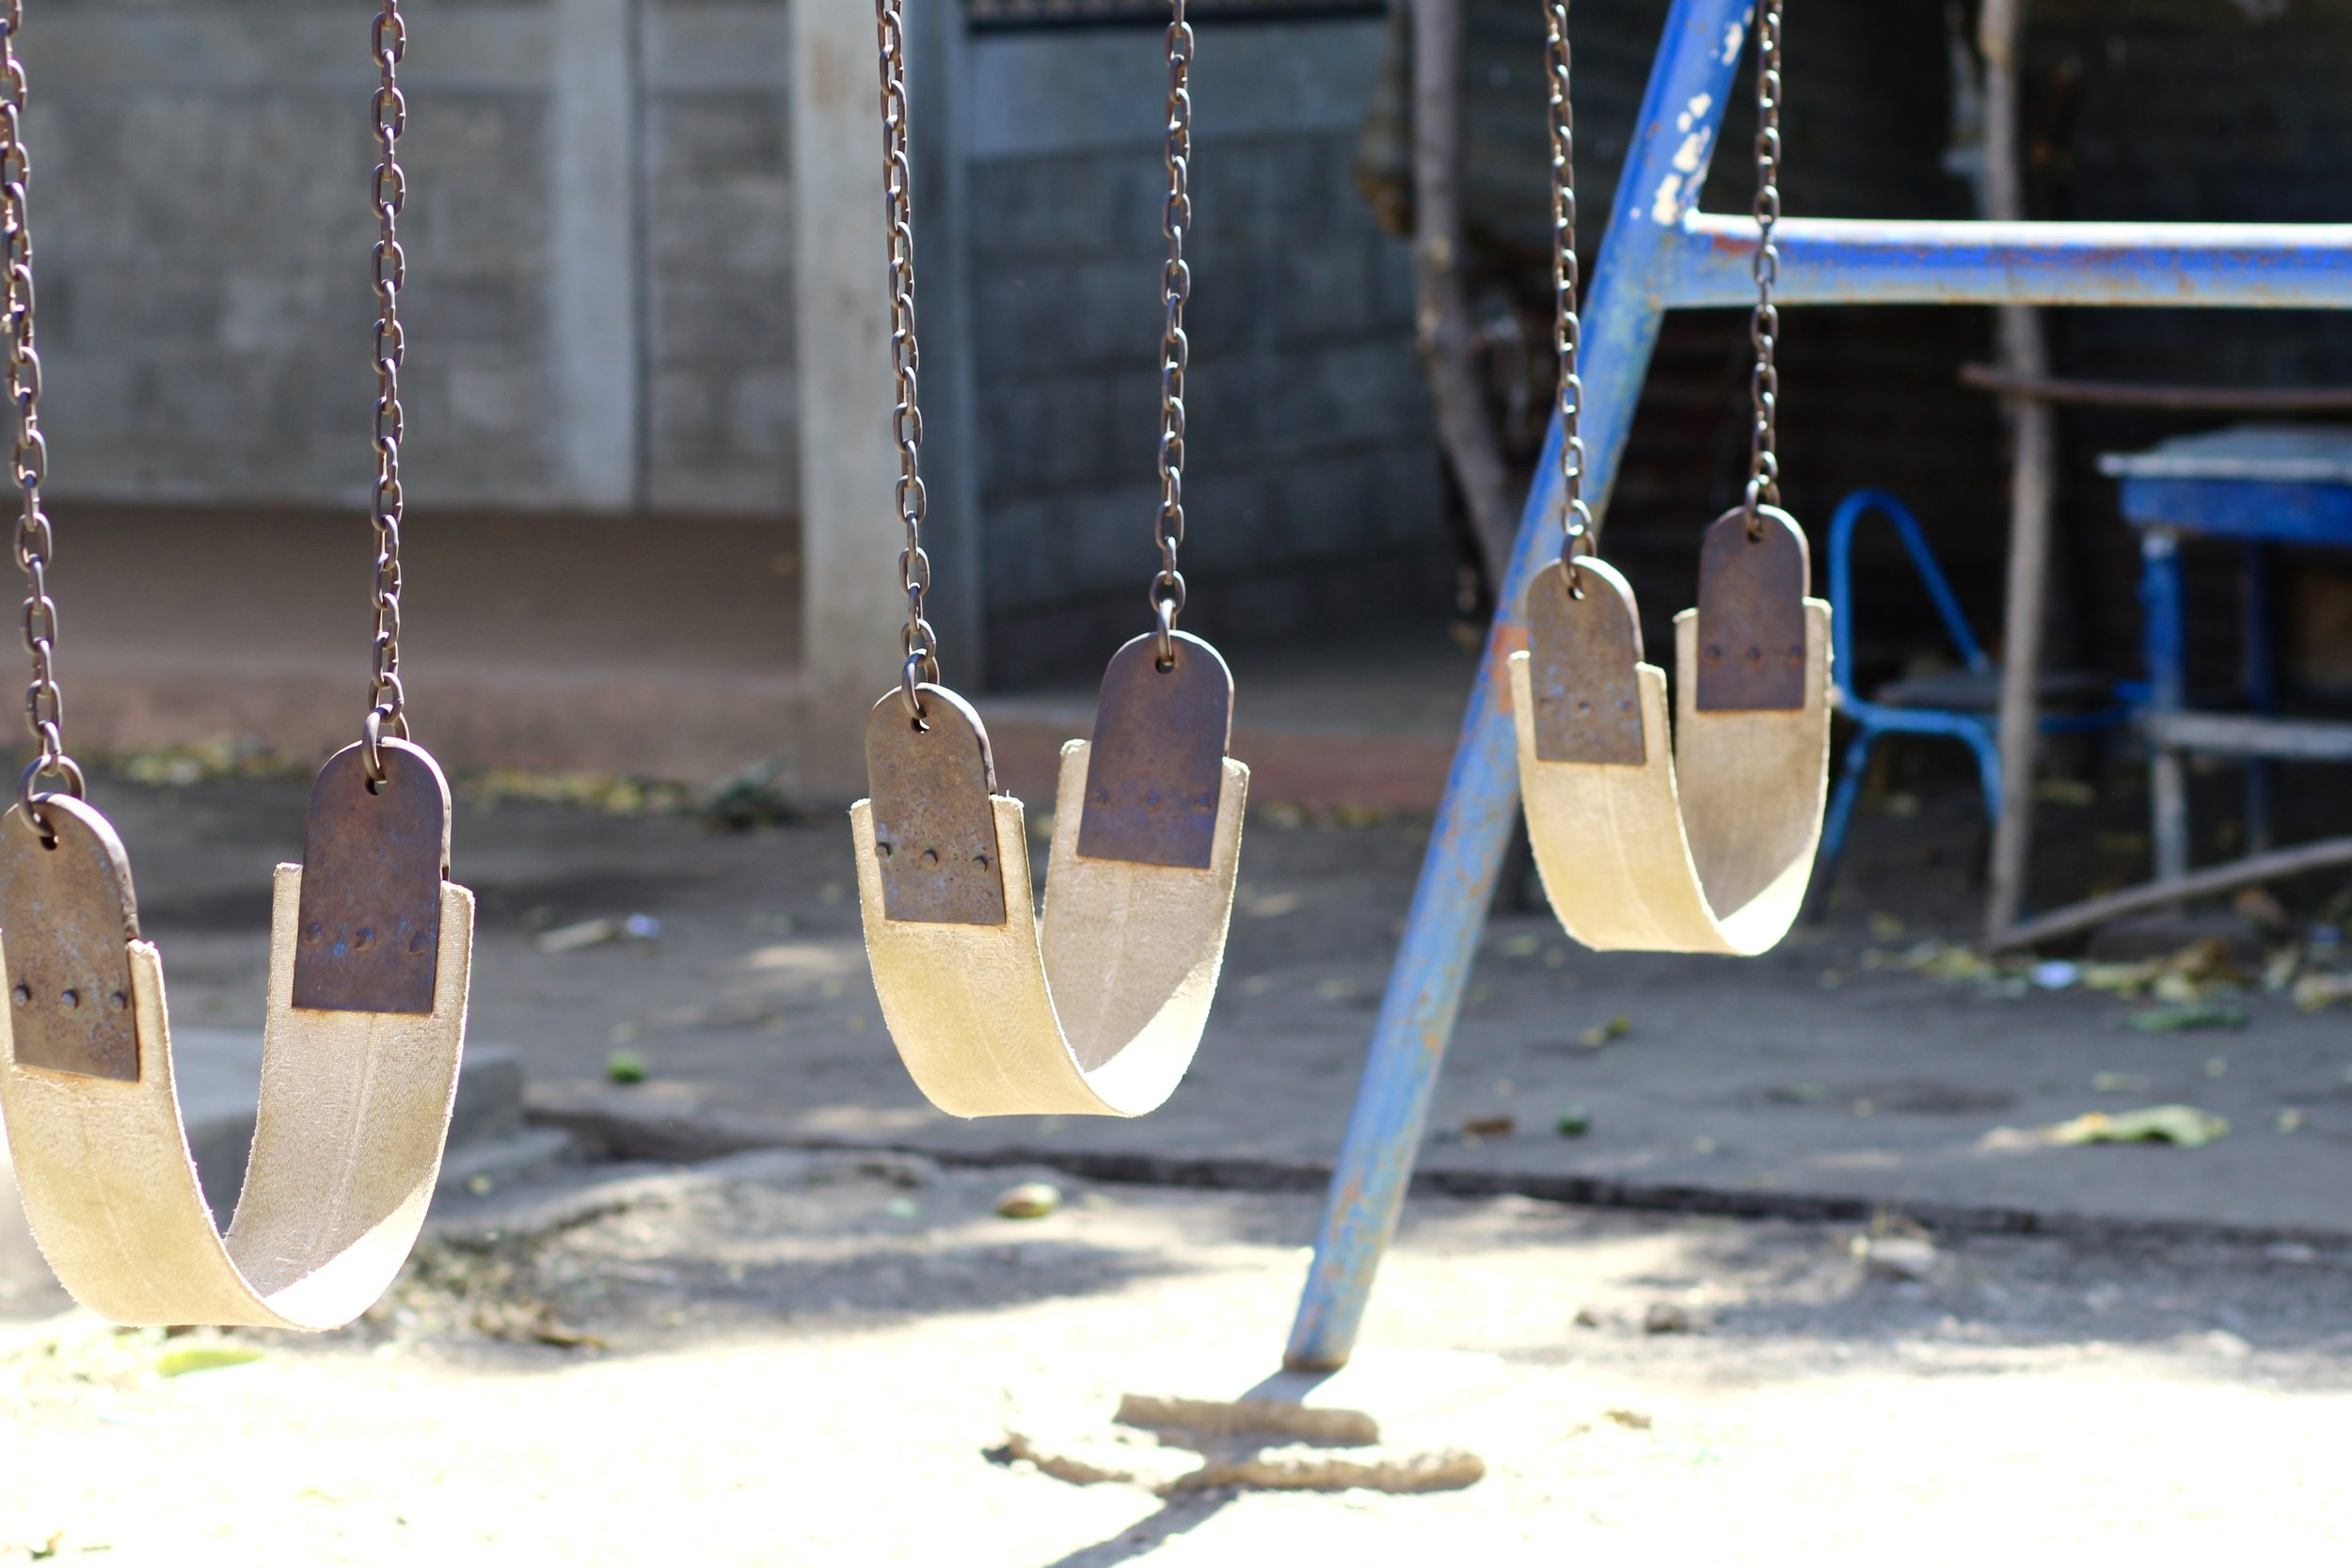 The playground at Escuela La Arenera sits empty on a Saturday morning in March. Photo: Emma Robertson